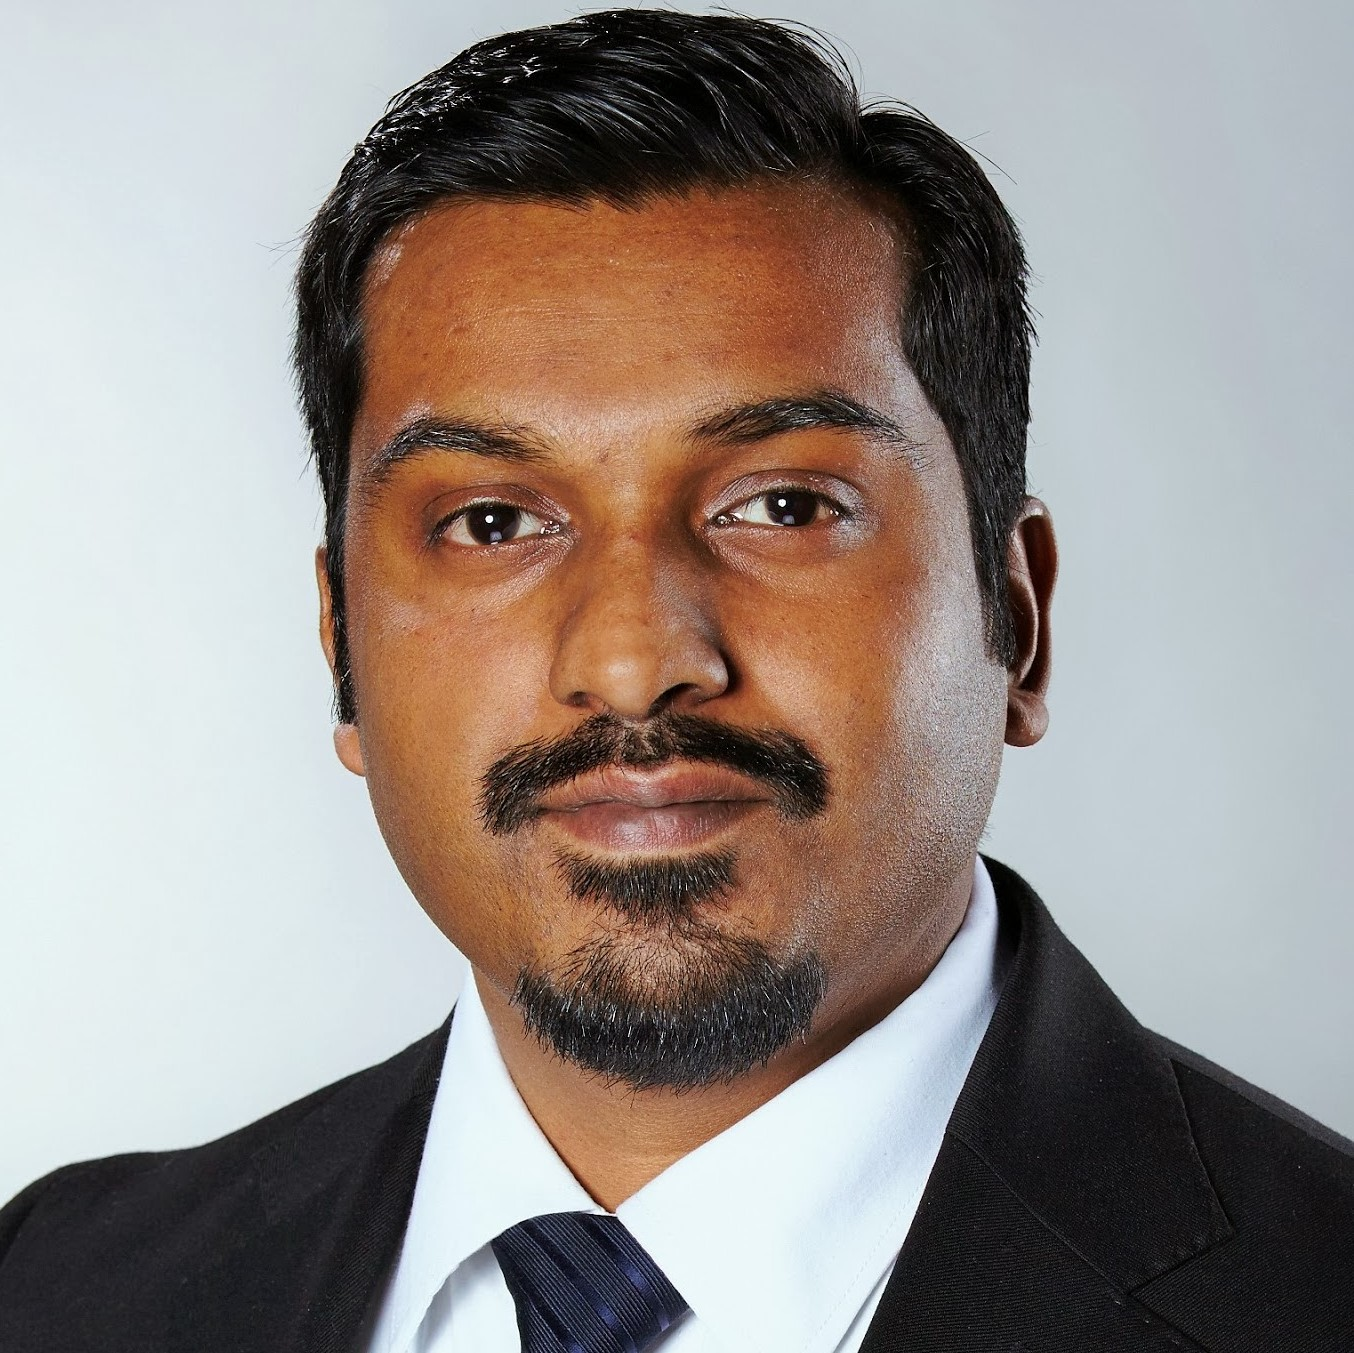 Daniel Raja - Executive Director of BVMW India